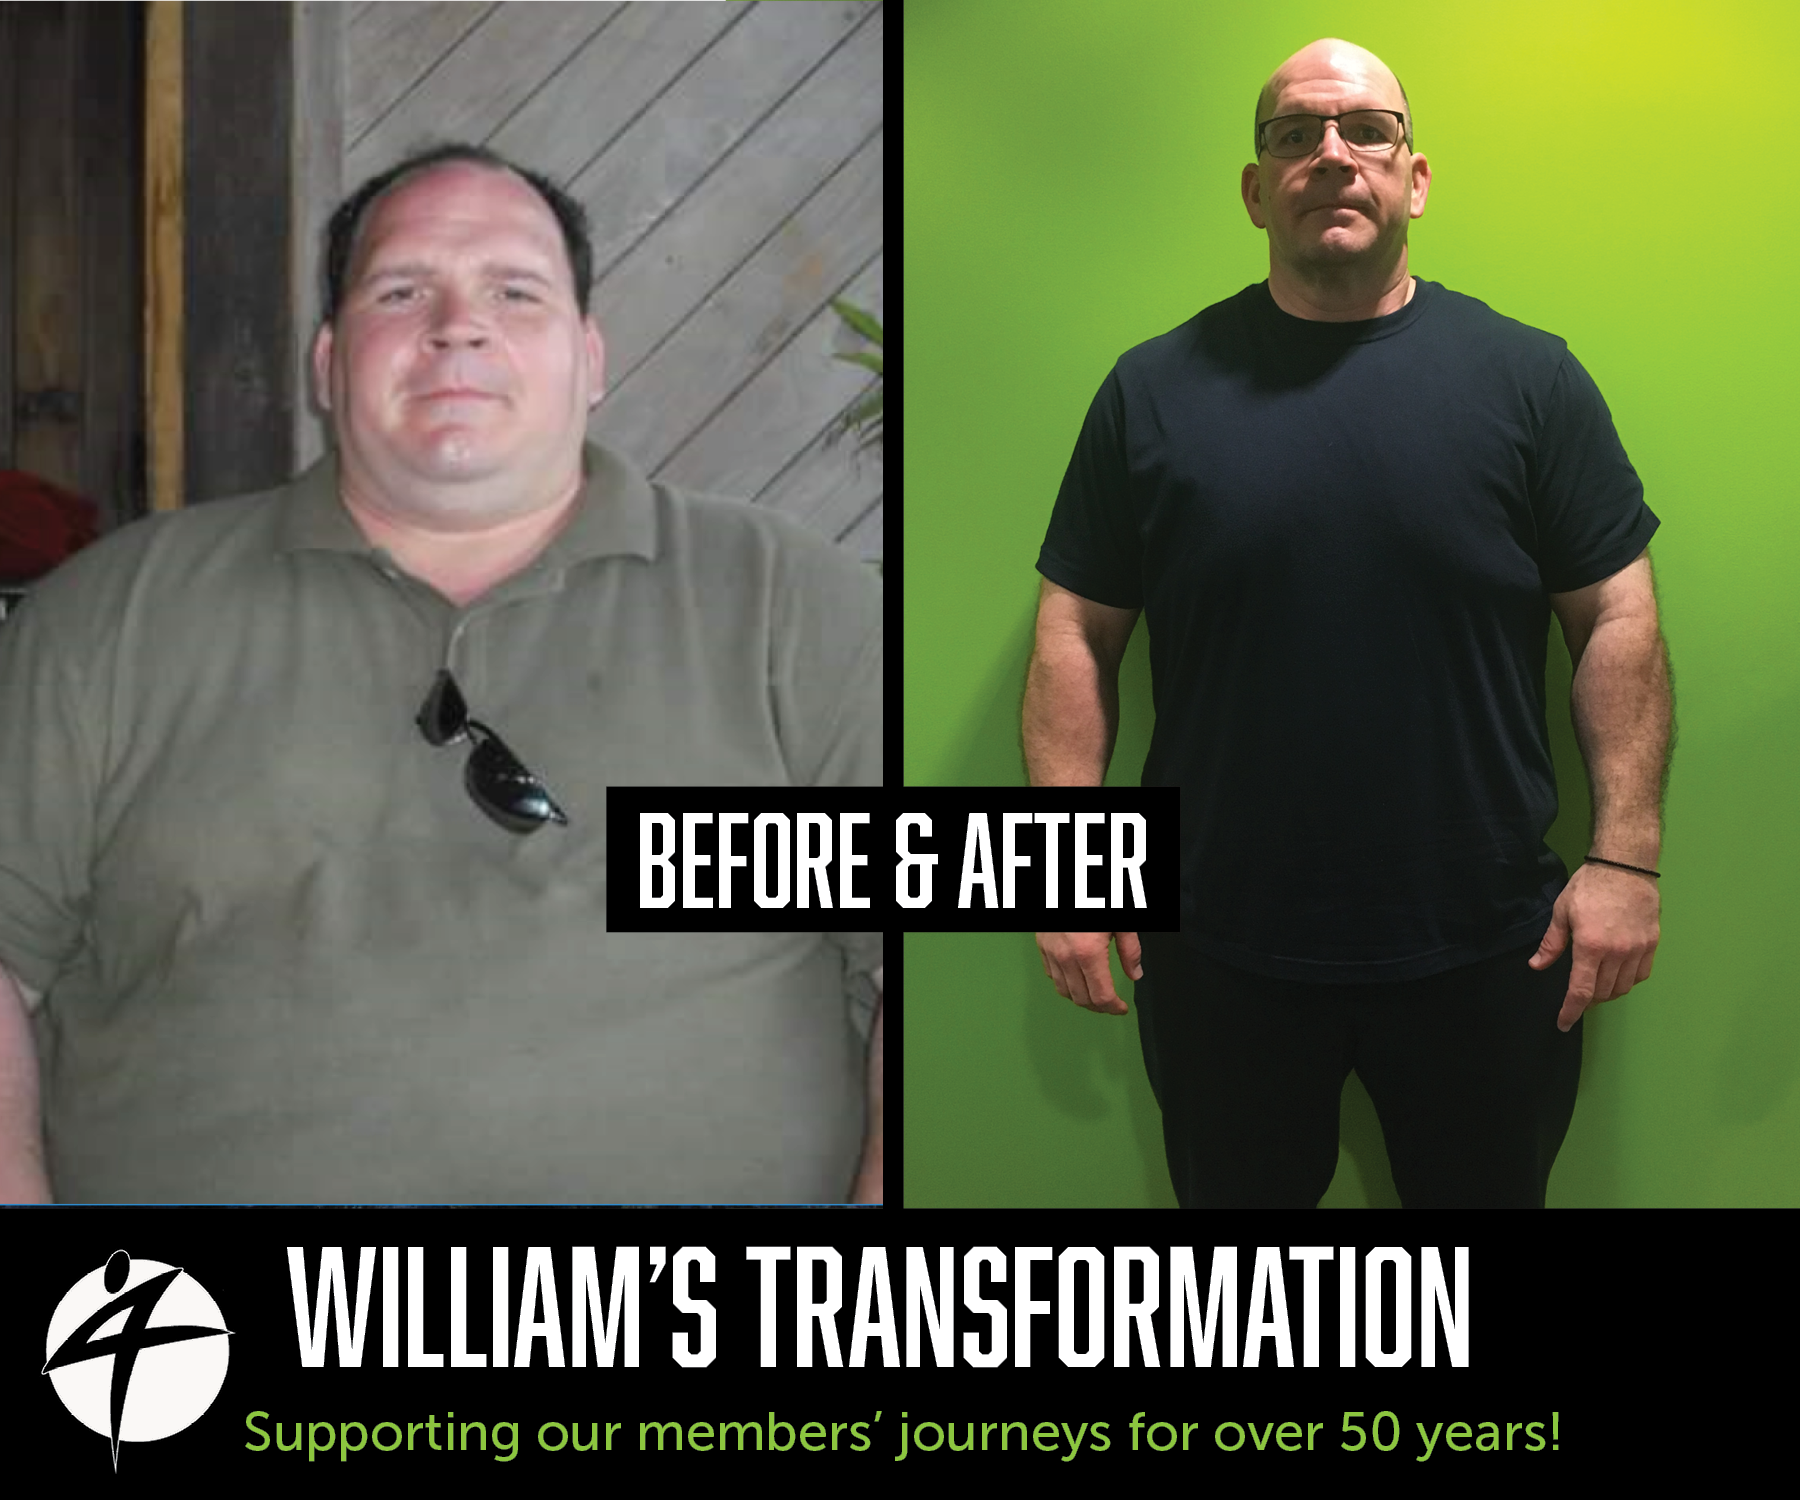 William_Before and After March 2018